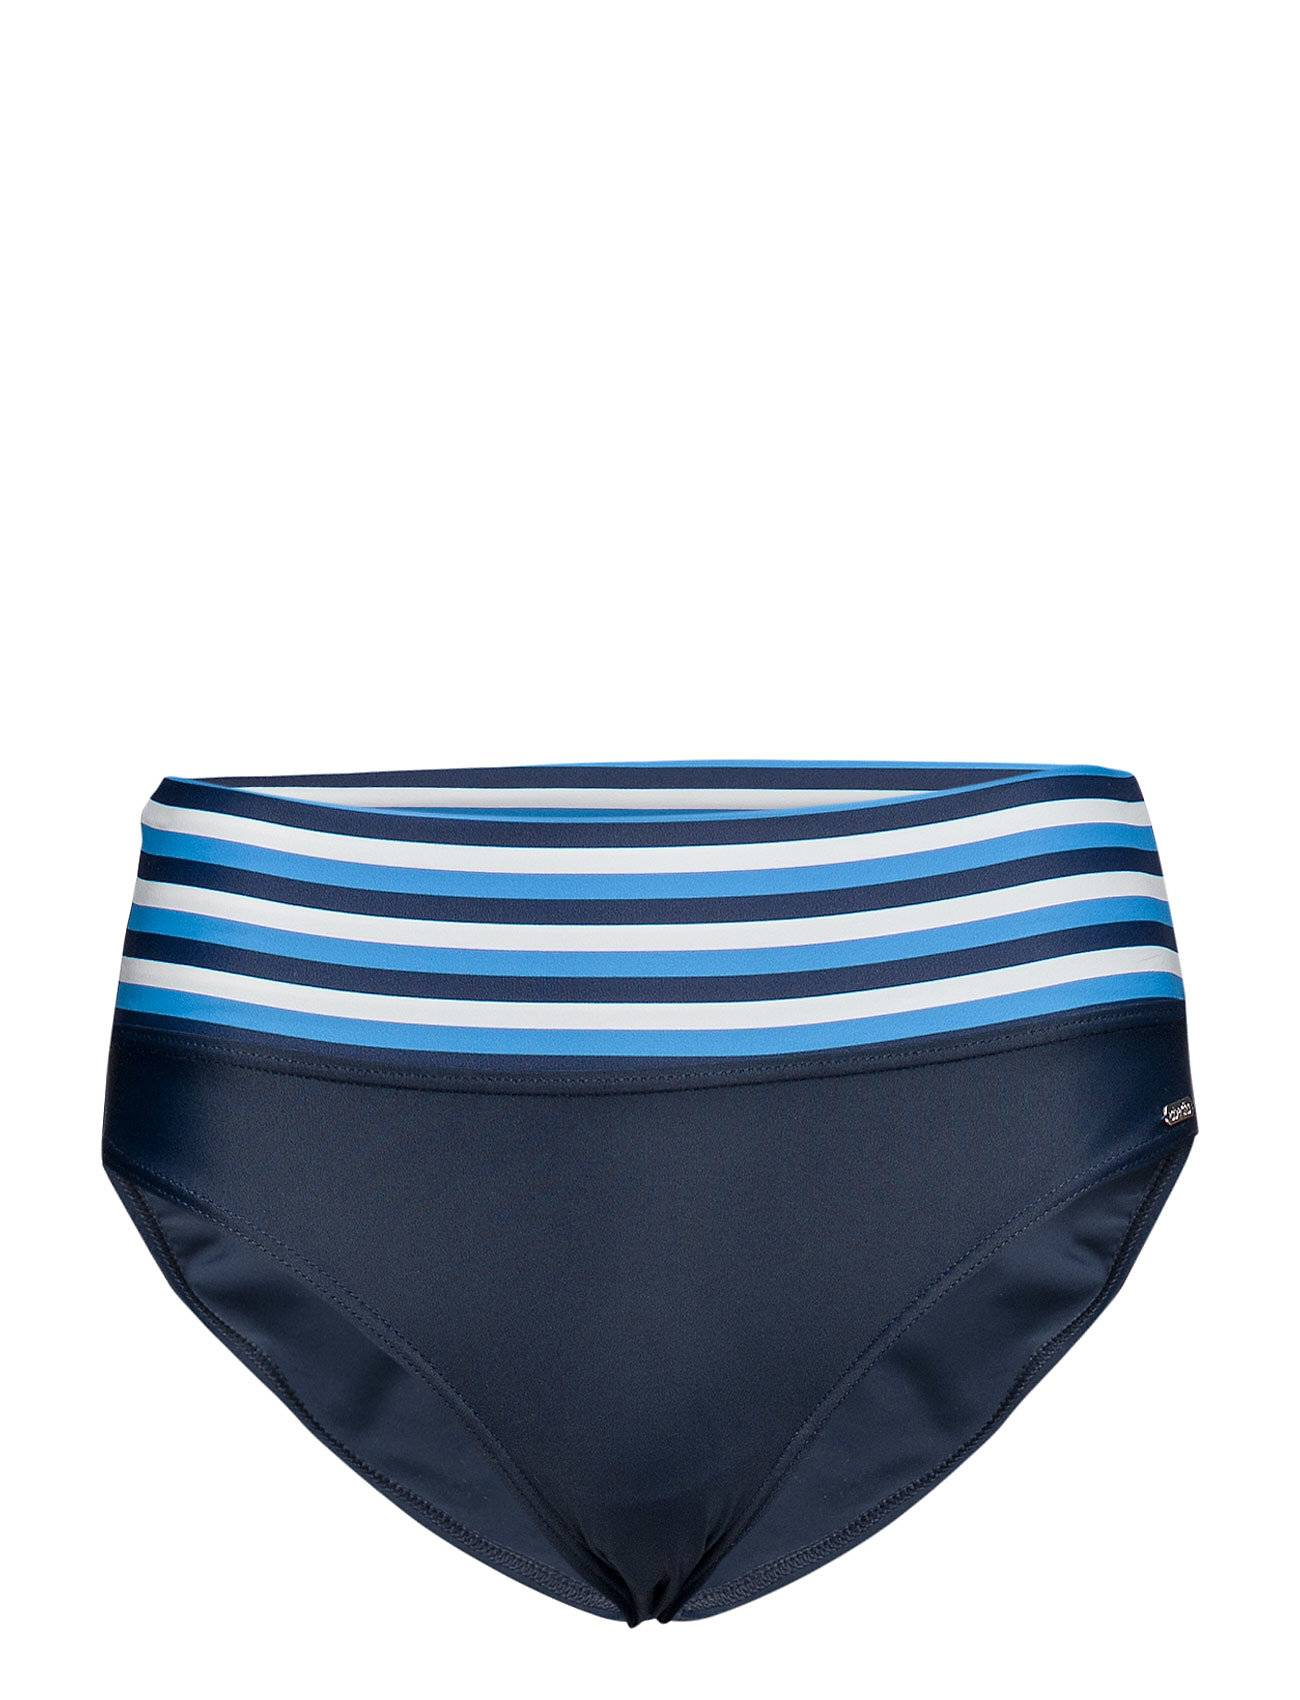 Abecita Holiday, Folded Brief